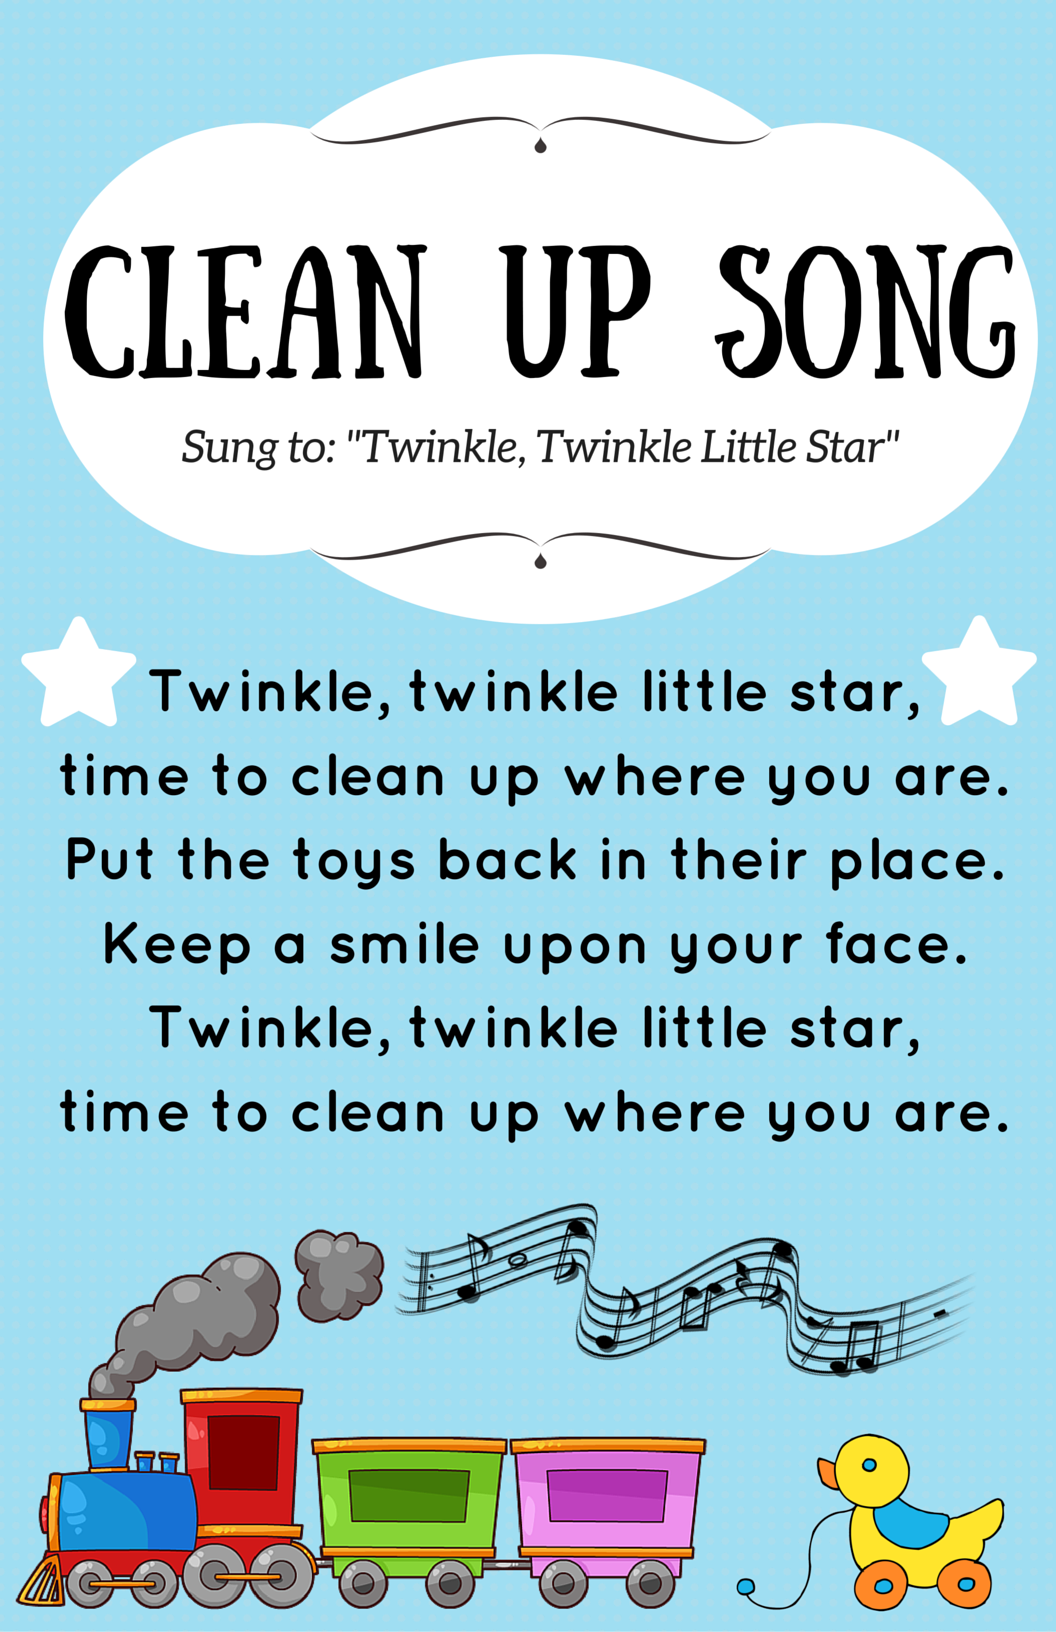 Cleanup Song